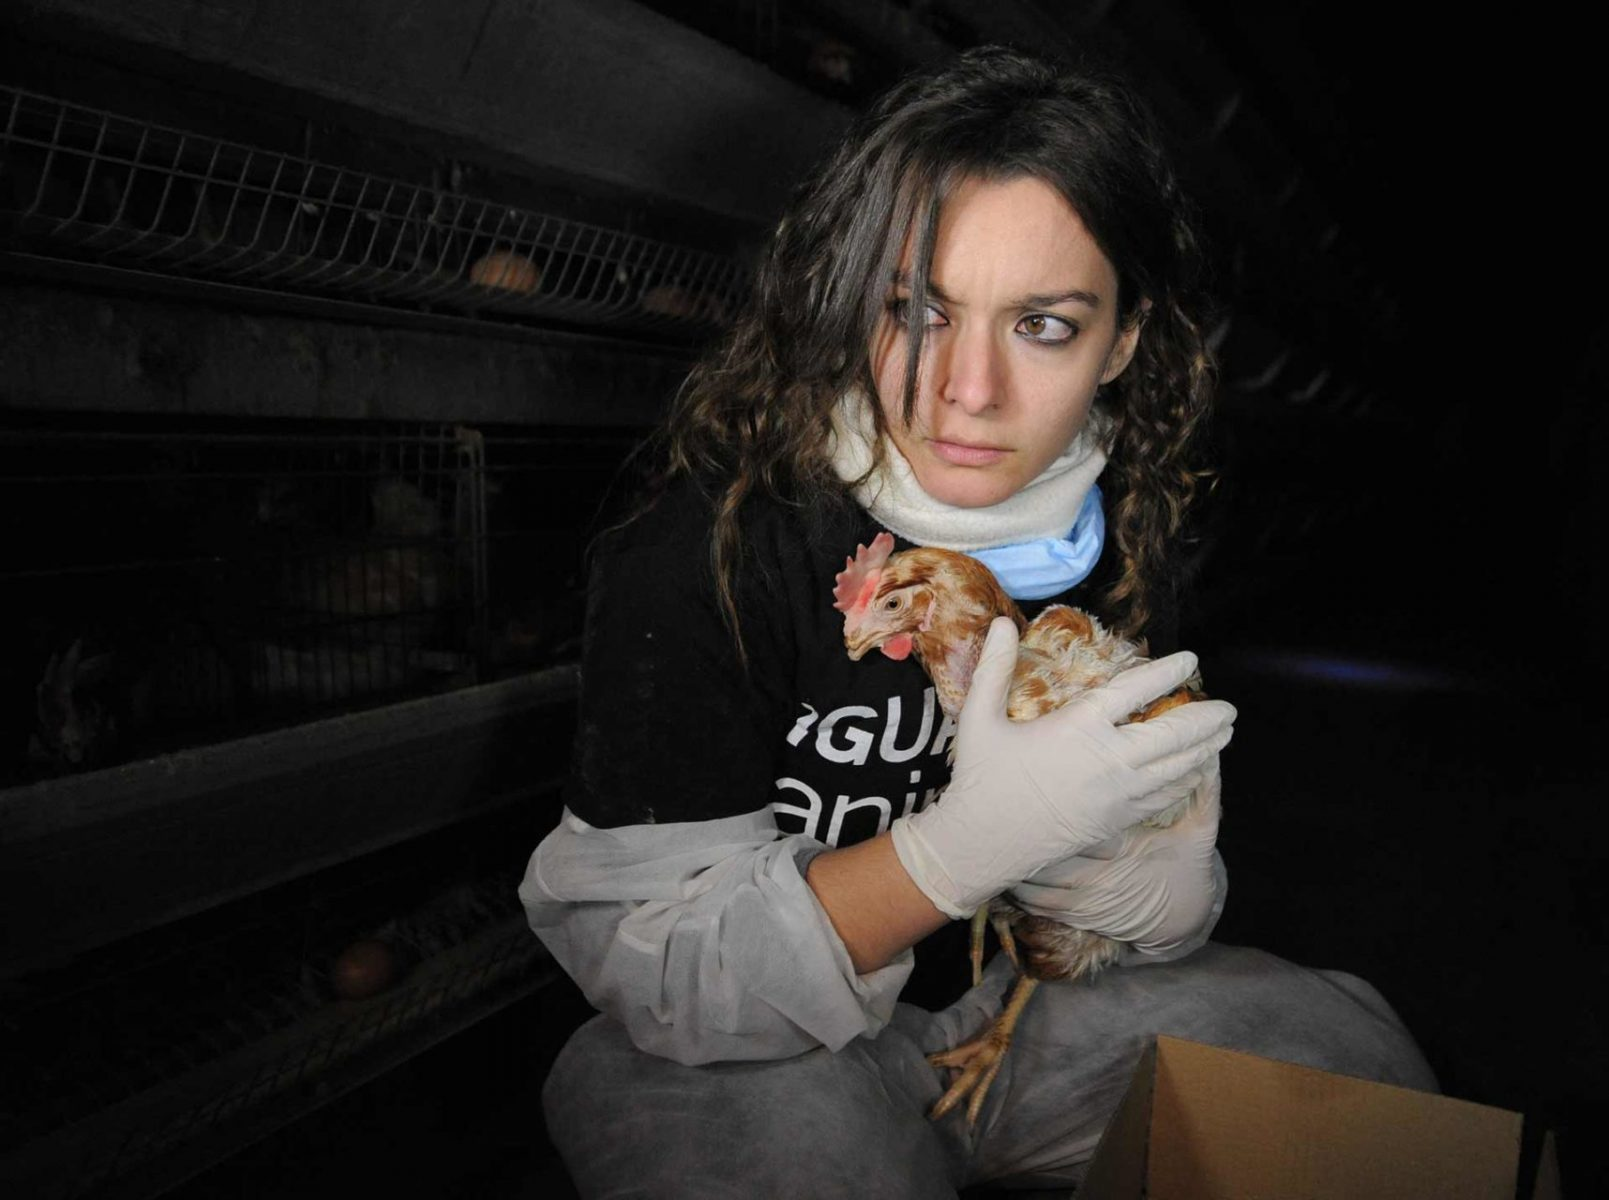 Maria Gonzalez with a hen during an open rescue with Igualdad Animal. Spain, 2009